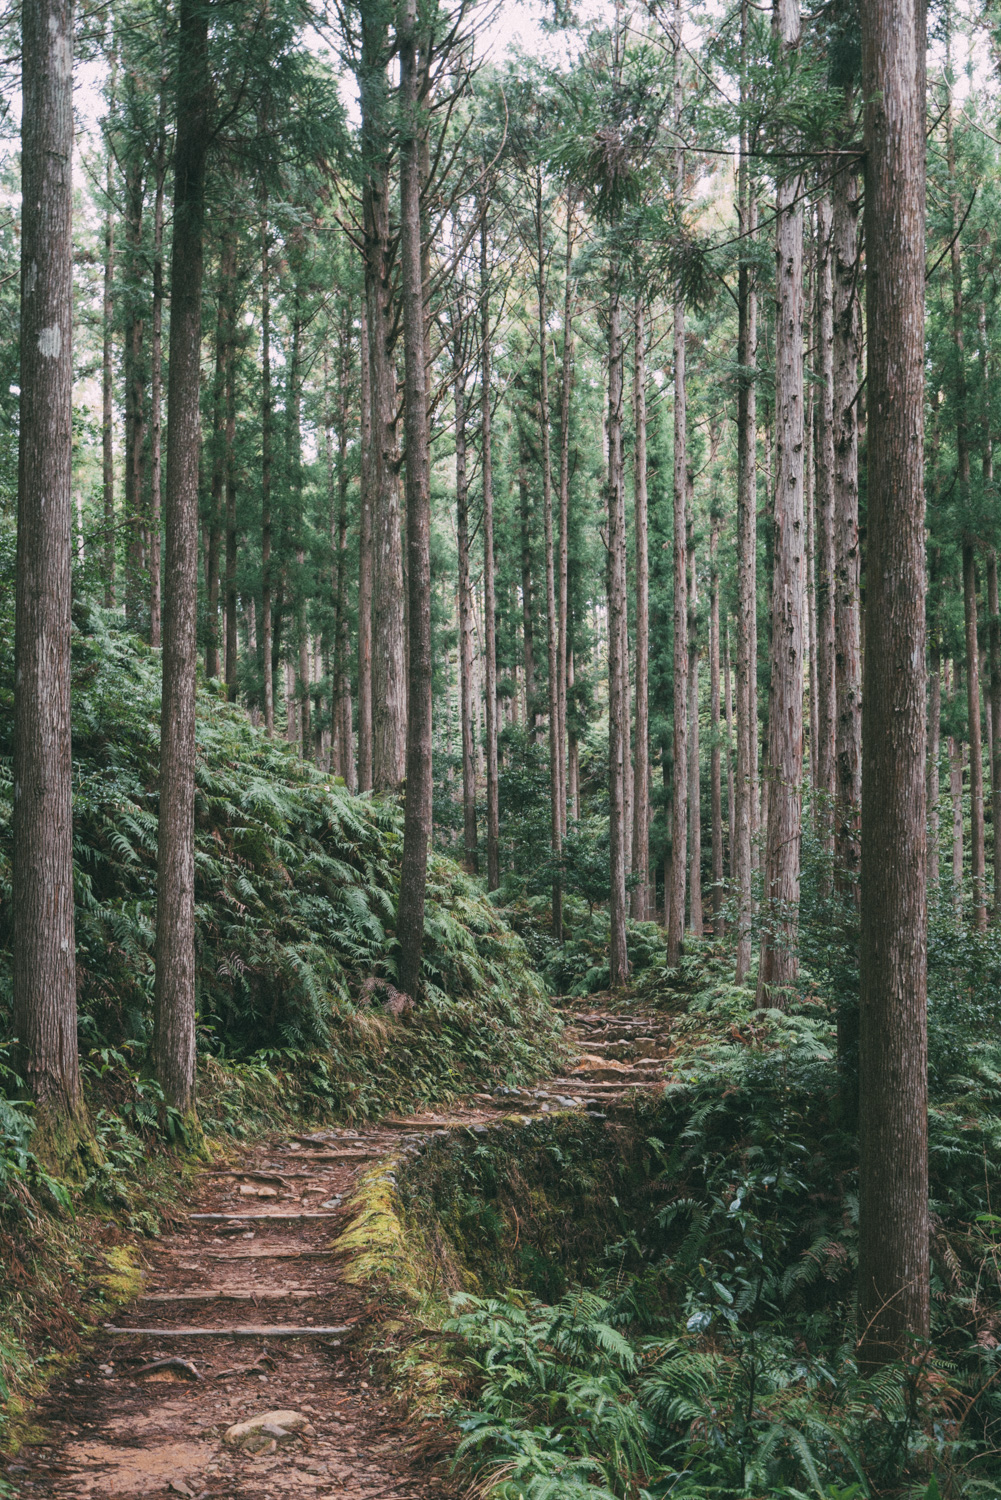 Kumano kodo trail [David Tan]